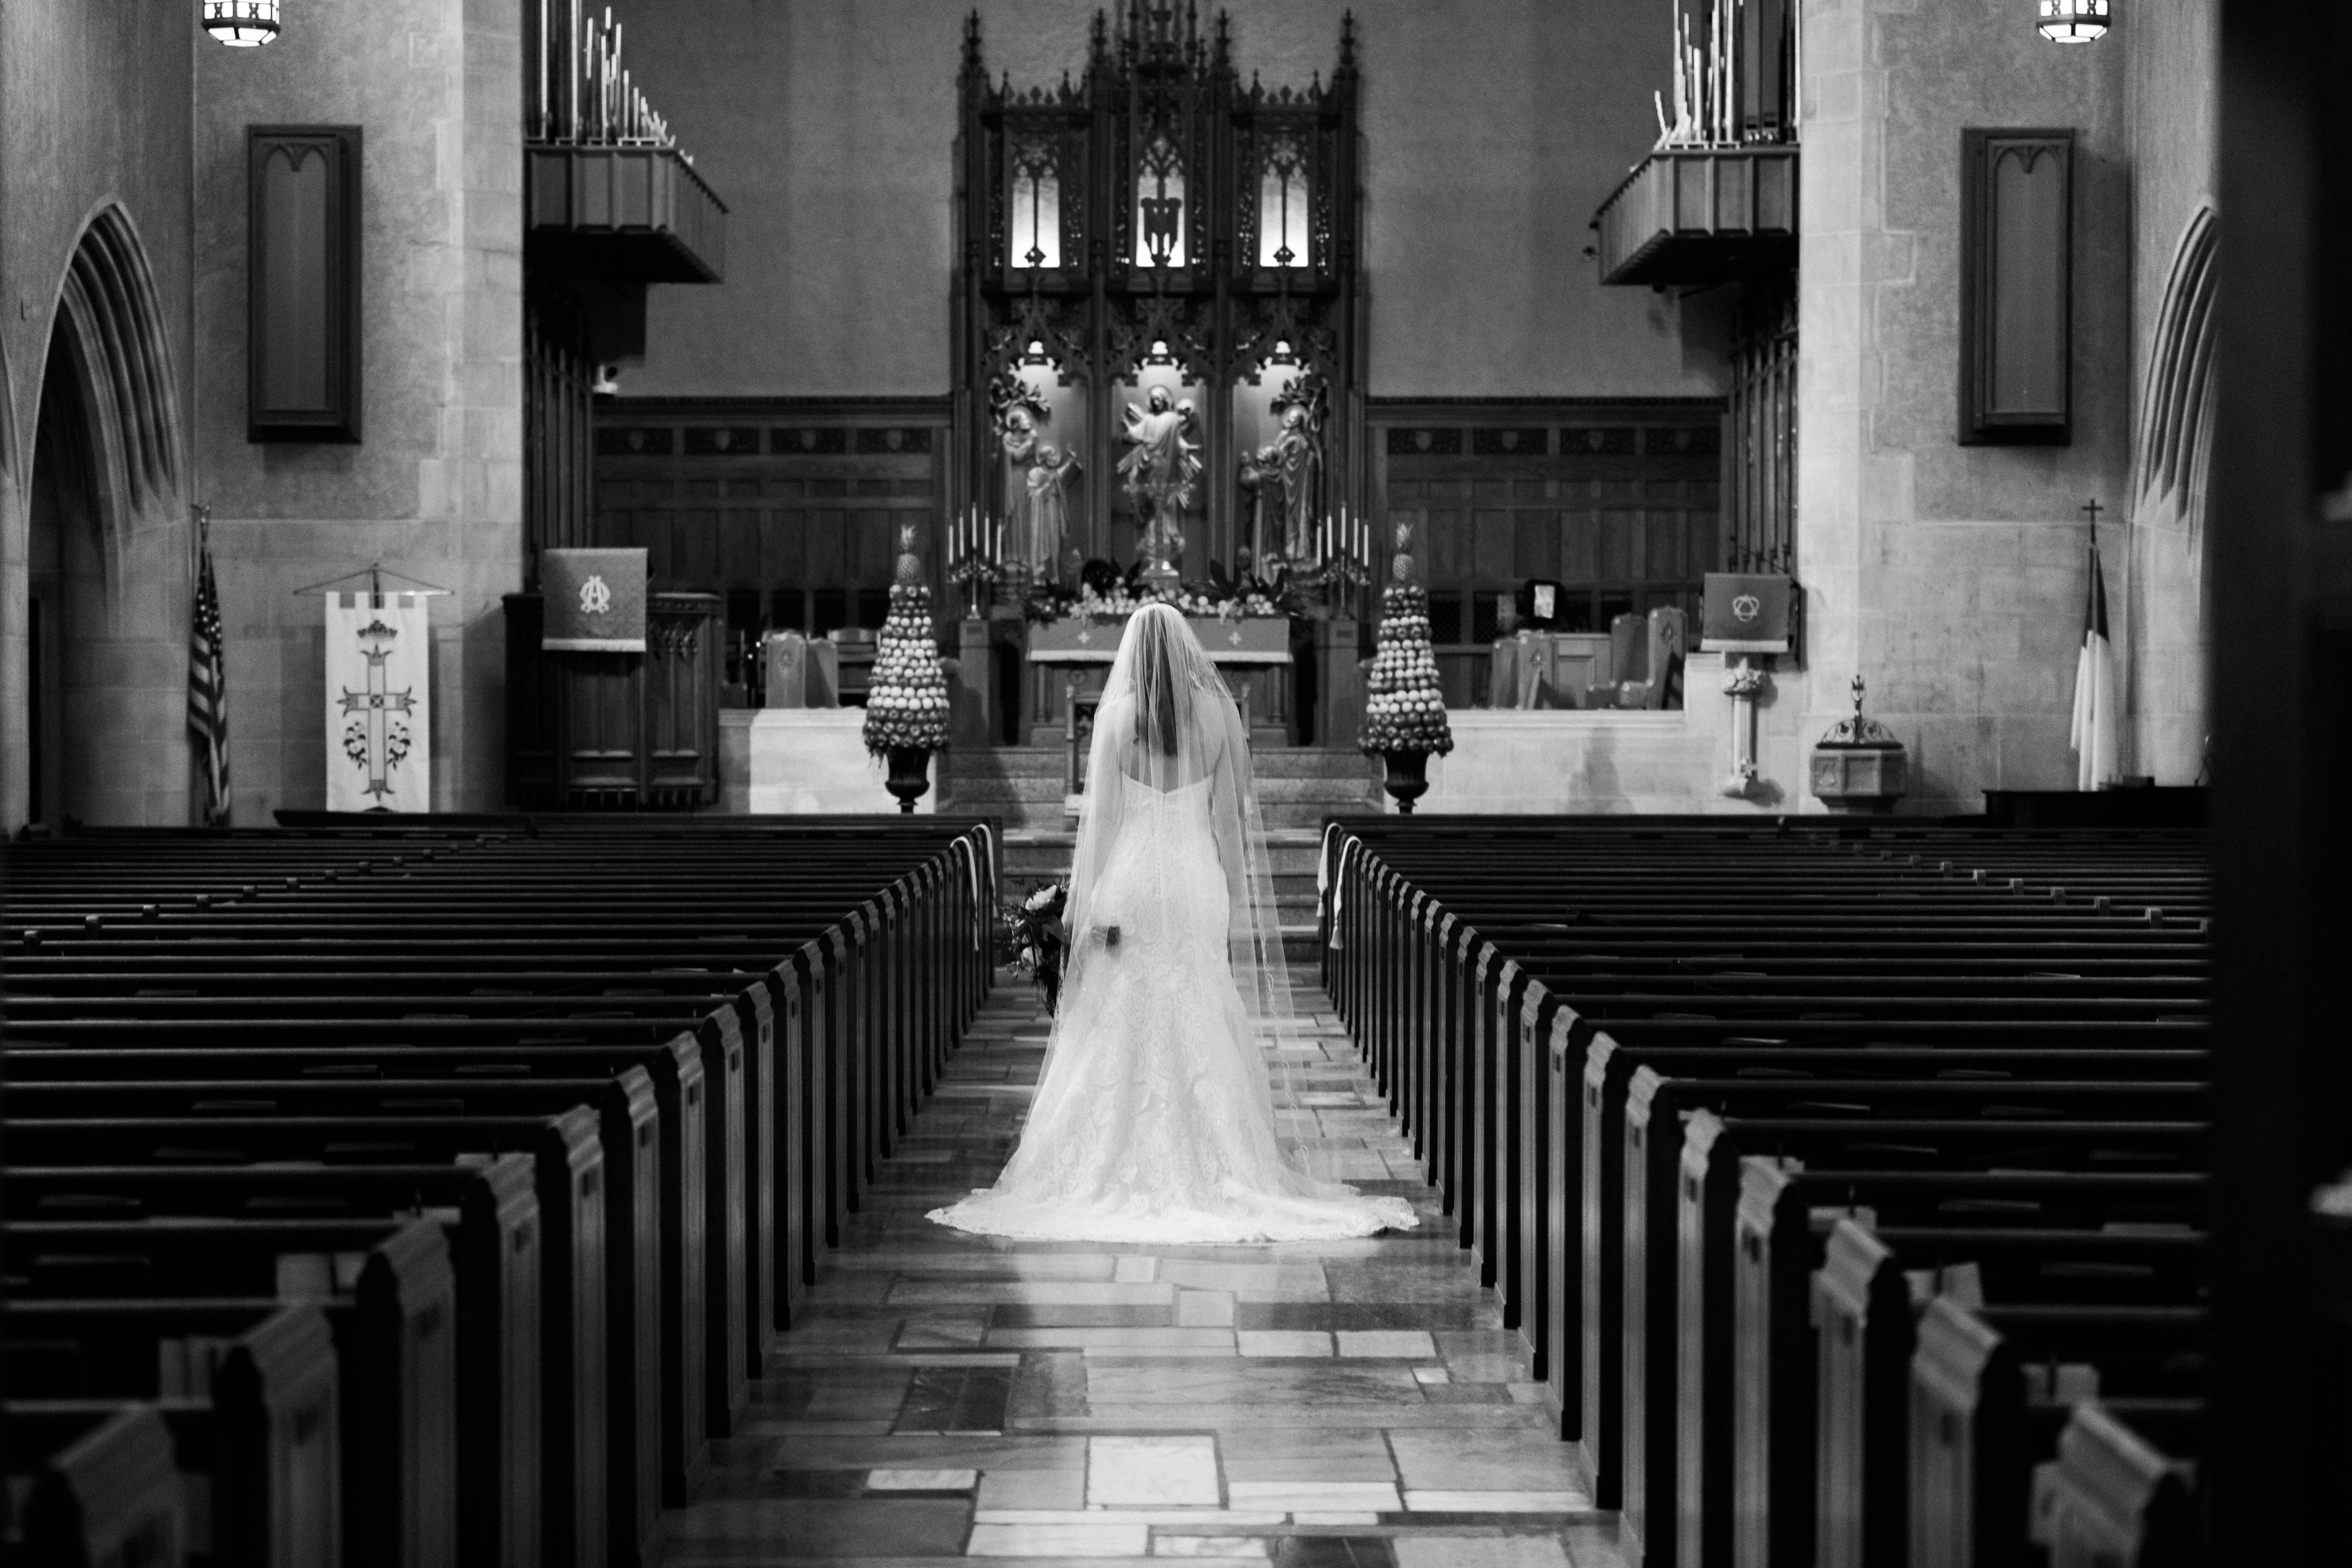 BRYAN_WEDDING_MONTGOMERY_ALABAMA_WEDDING_PHOTOGRAPHY_19